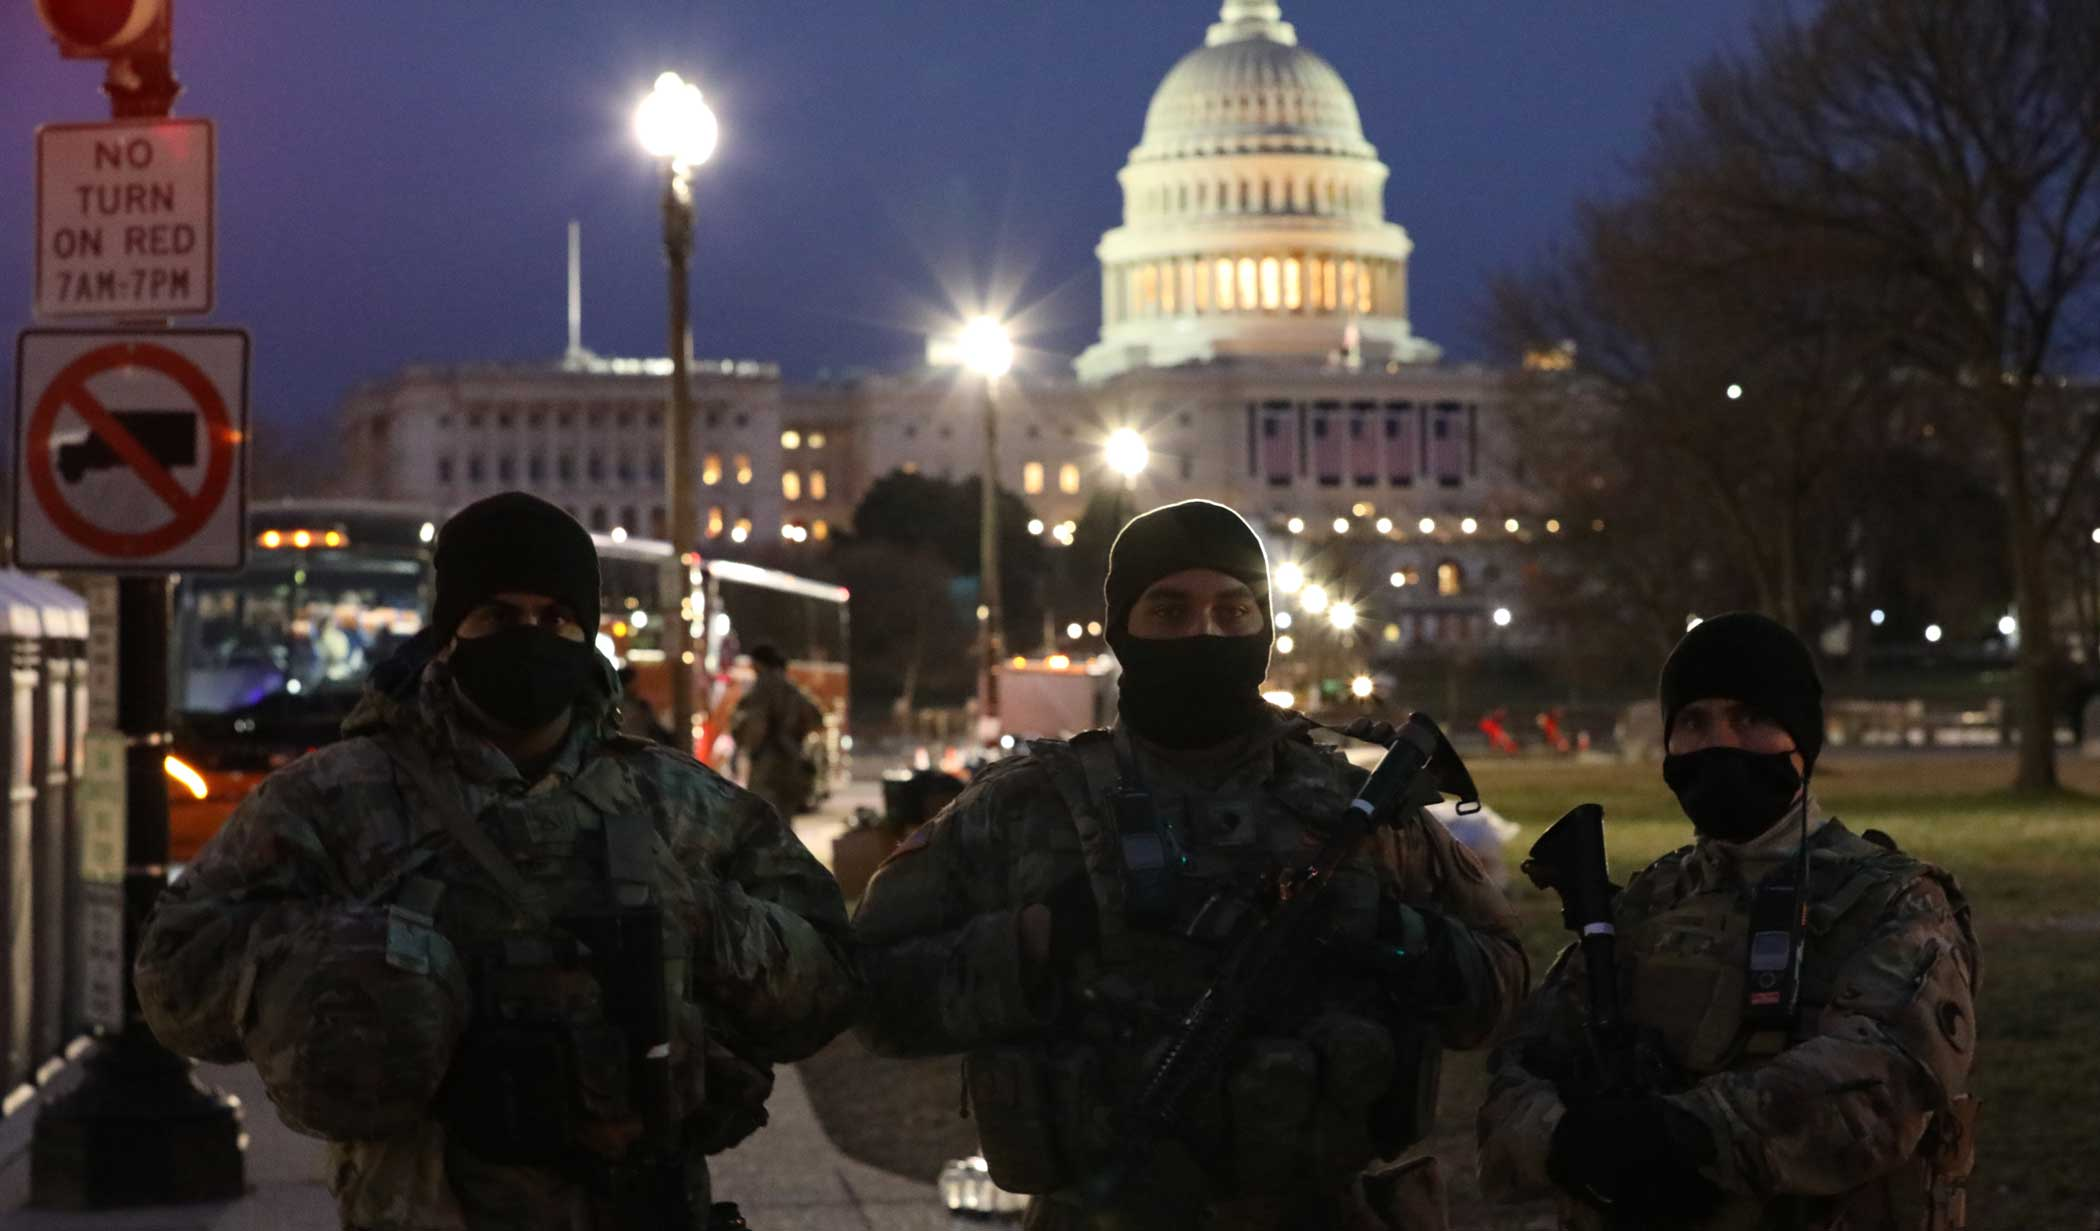 From Left: U.S. Army Pfc. Ashkan Shirazifar, Spc. Jason Ford, and Sgt. 1st Class James Melady, all with the Virginia Army National Guard, stand at a security post near the U.S. Capitol Complex Jan. 16. Photo by Staff Sgt. Devlin Drew, courtesy of U.S. Army National Guard.